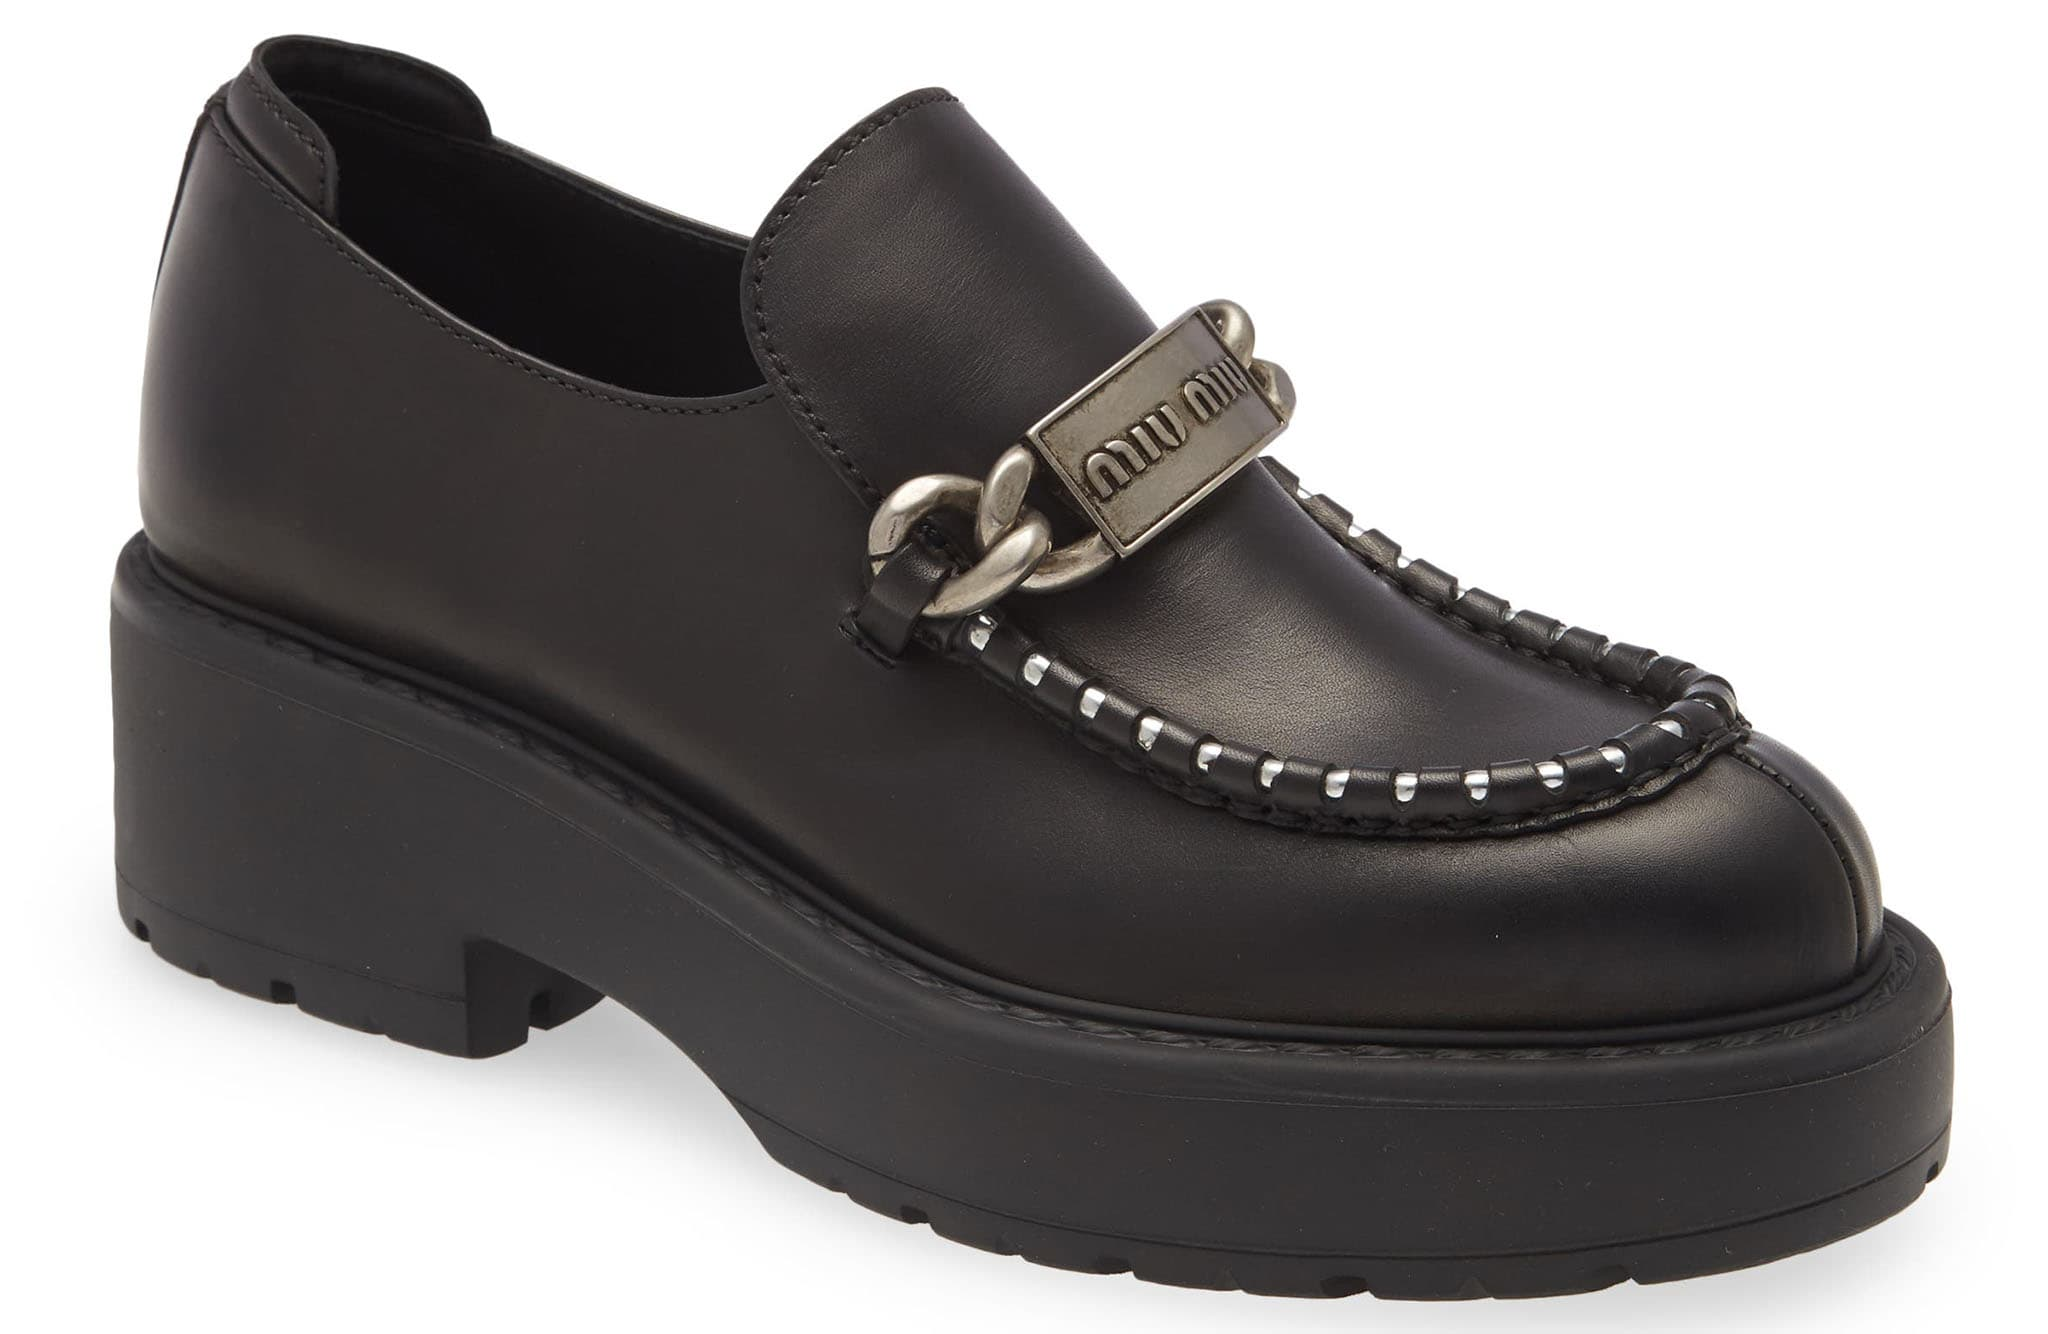 Logo-embossed bit hardware brands this contemporary Miu Miu loafer boosted by a chunky platform